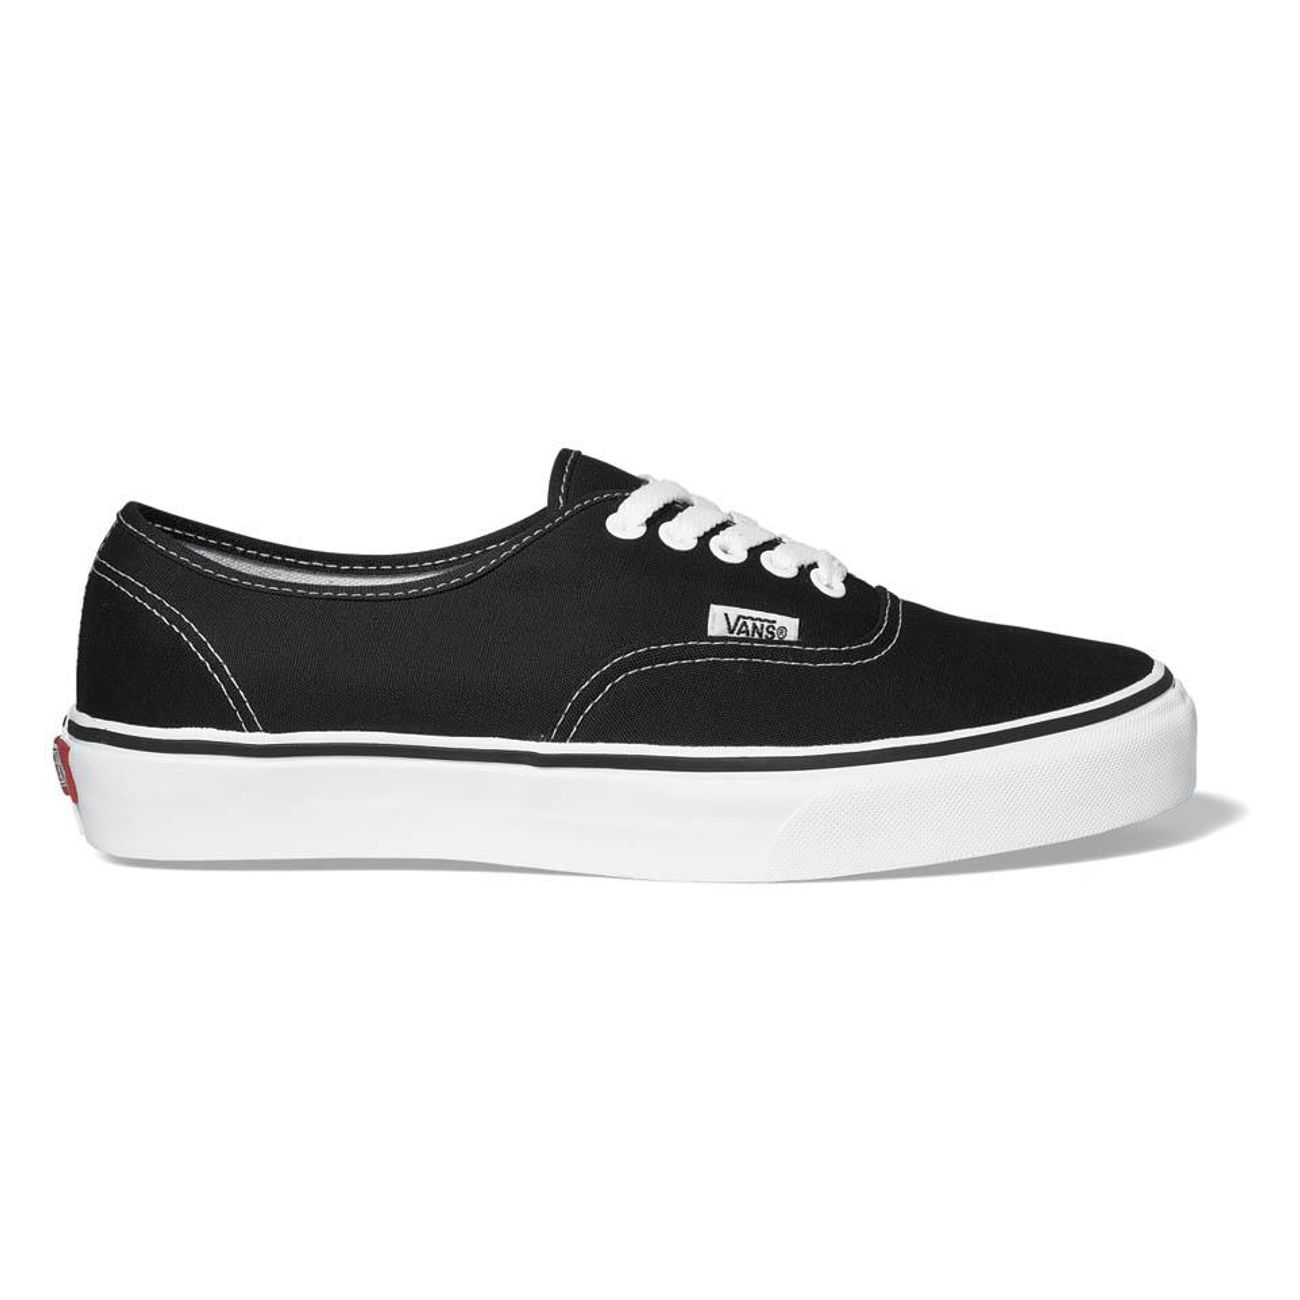 Mode- Lifestyle femme VANS Vans Authentic